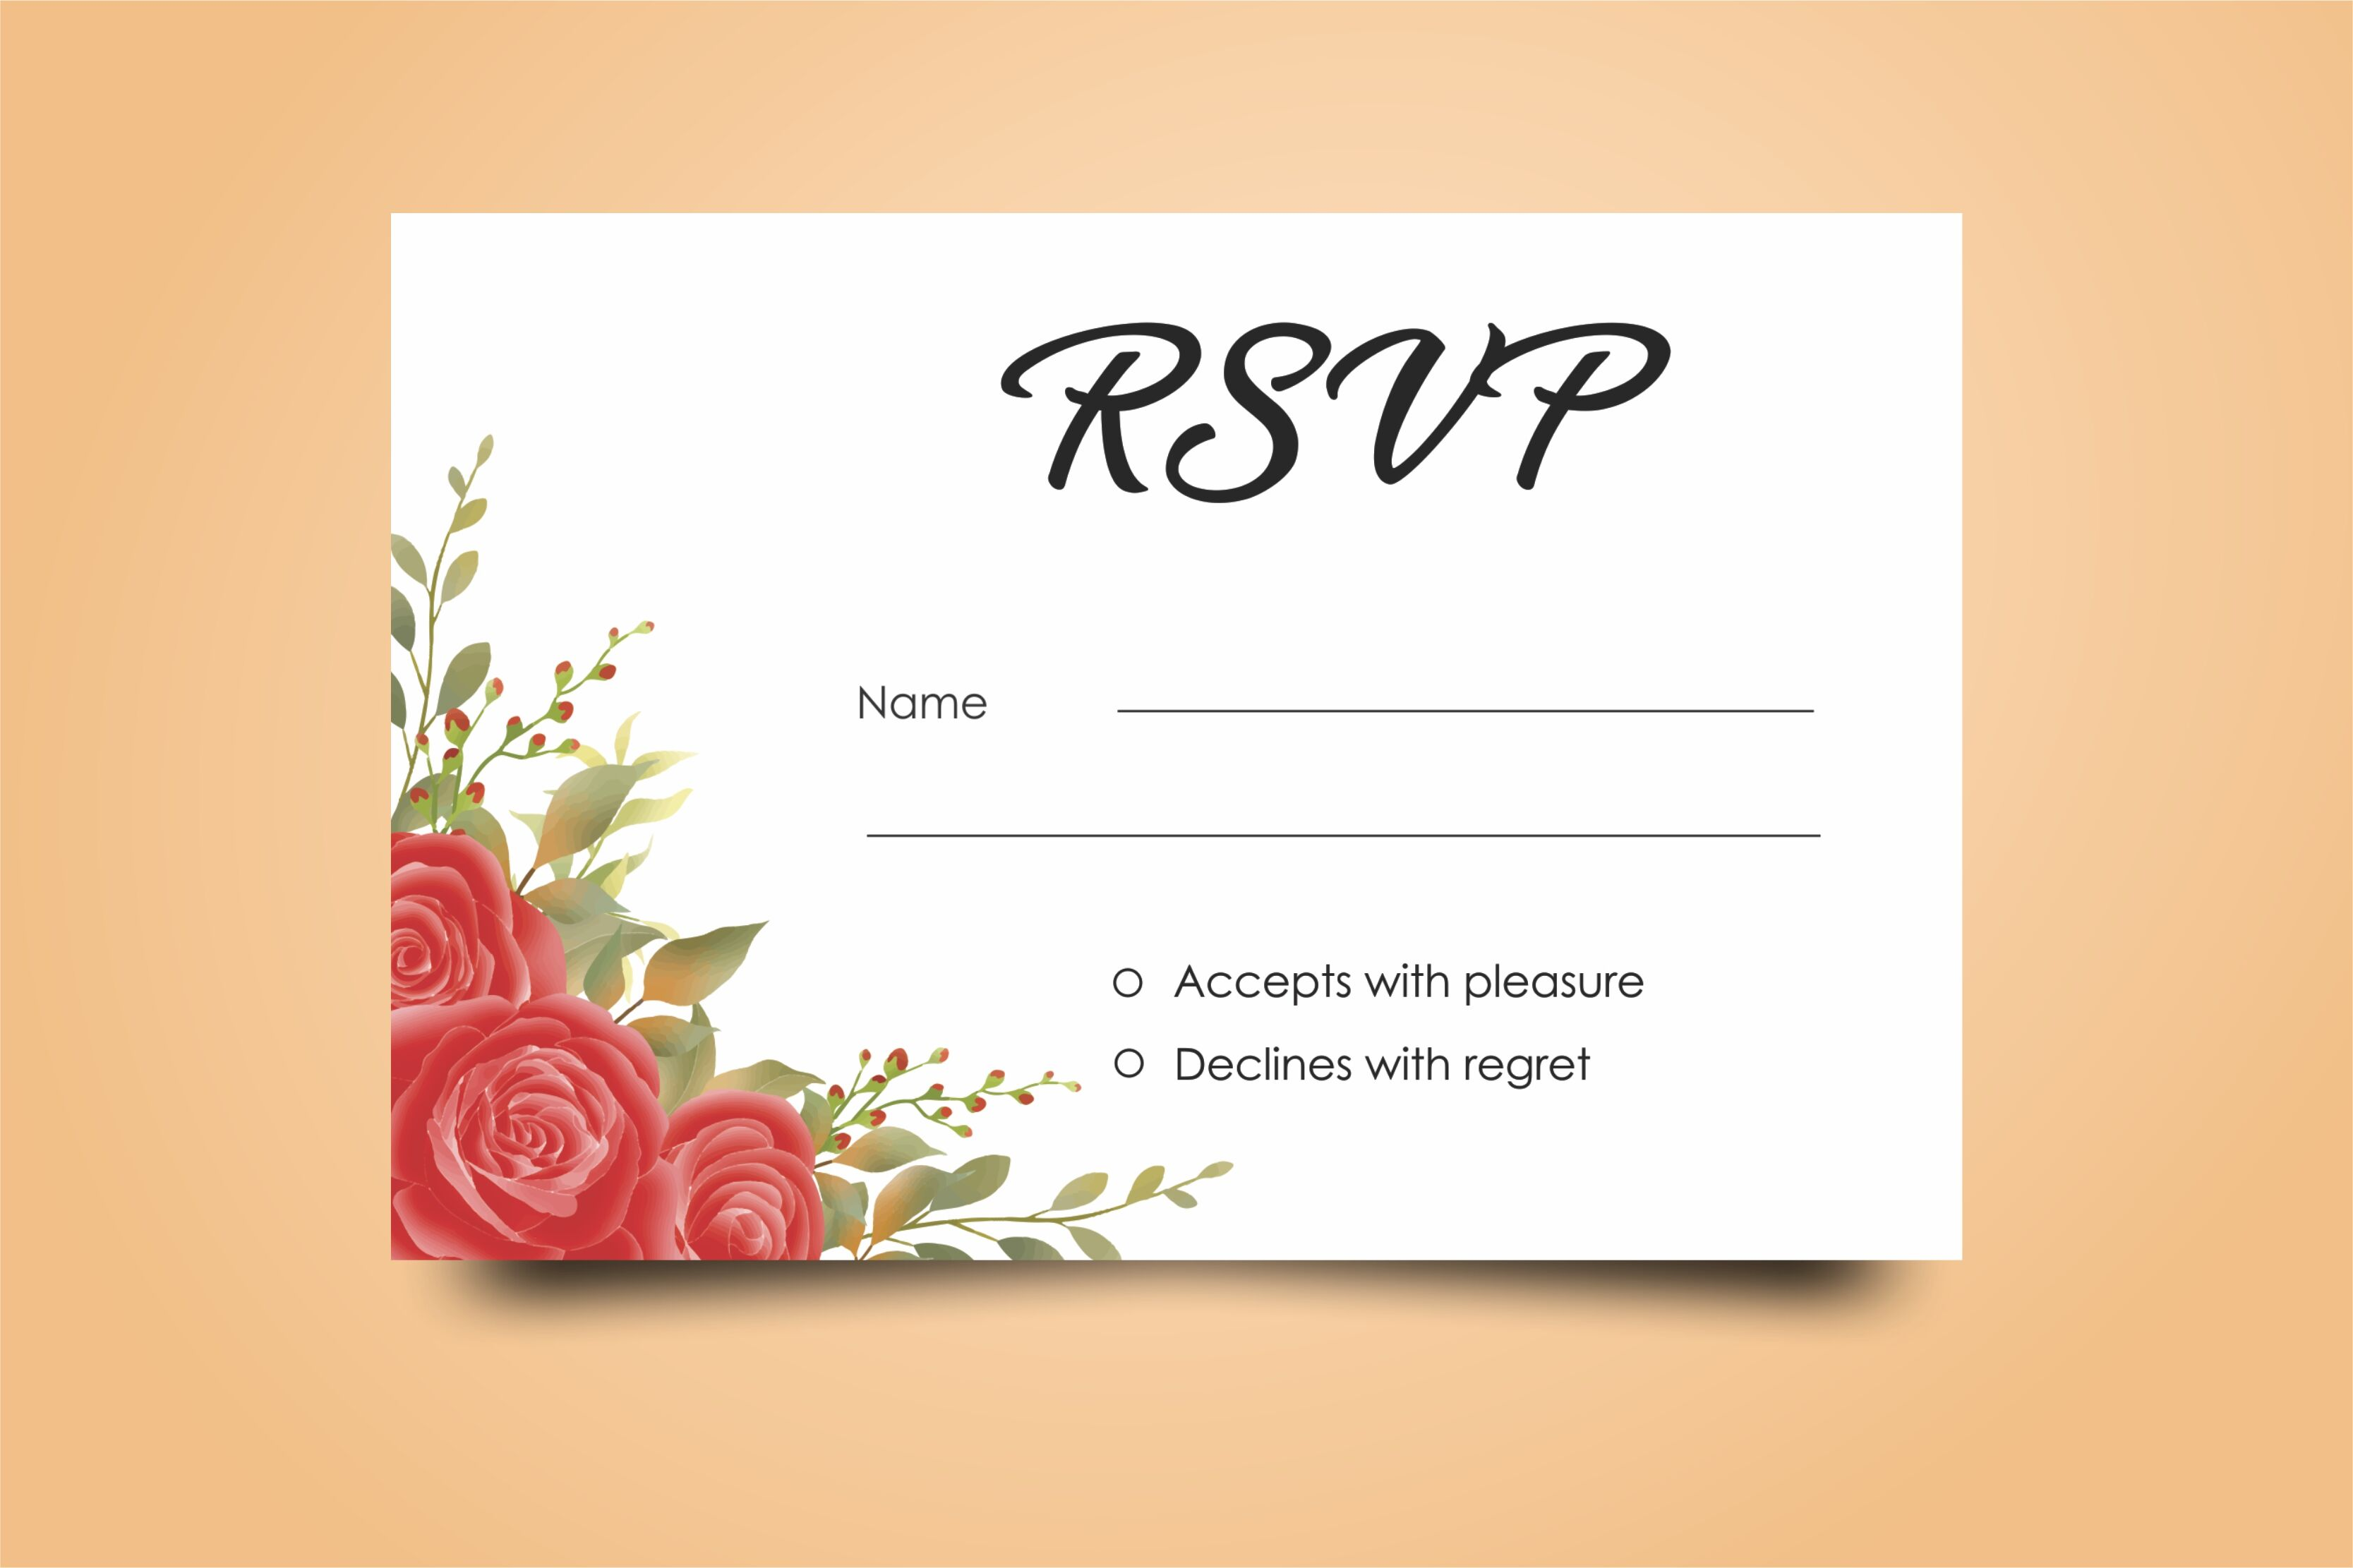 Beautiful Watercolor Wedding Invitation Card Templates By Bintstudio Thehungryjpeg Com